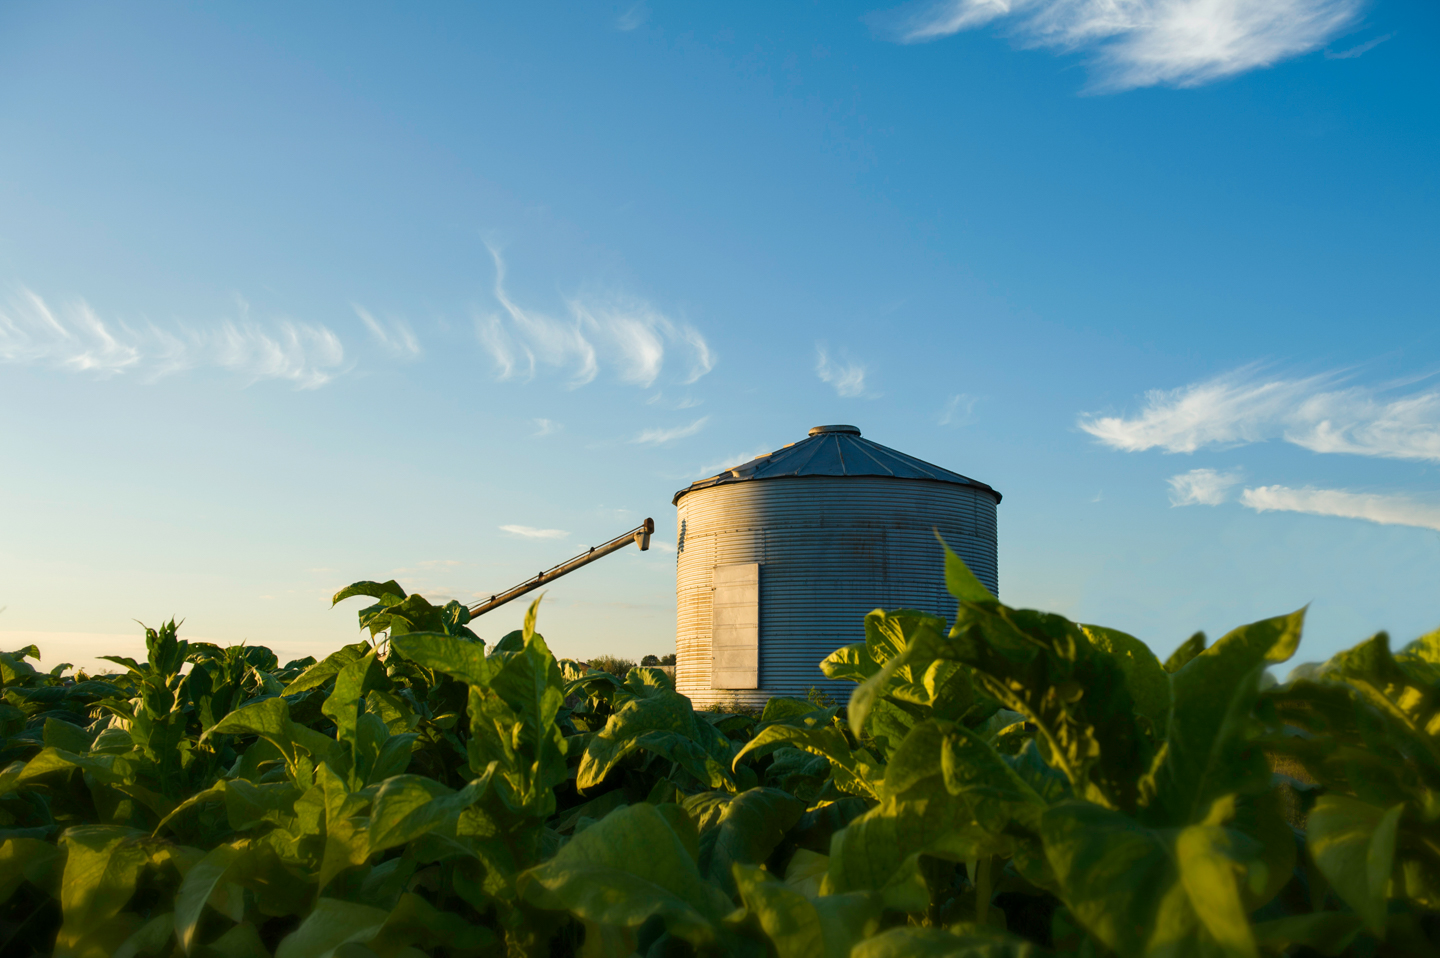 Tobacco and Silo